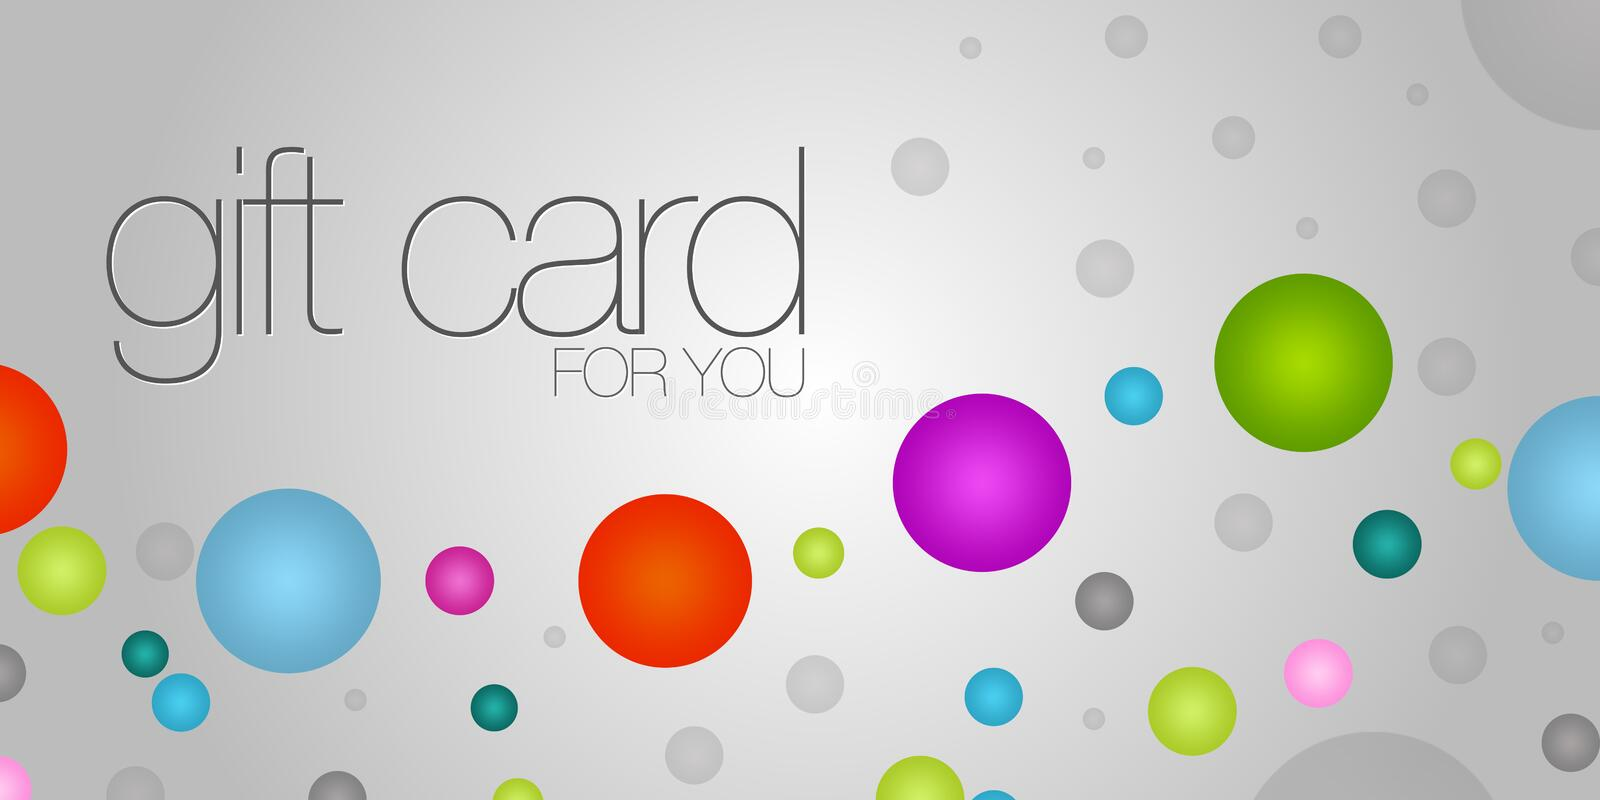 Colorful Gift Card royalty free illustration